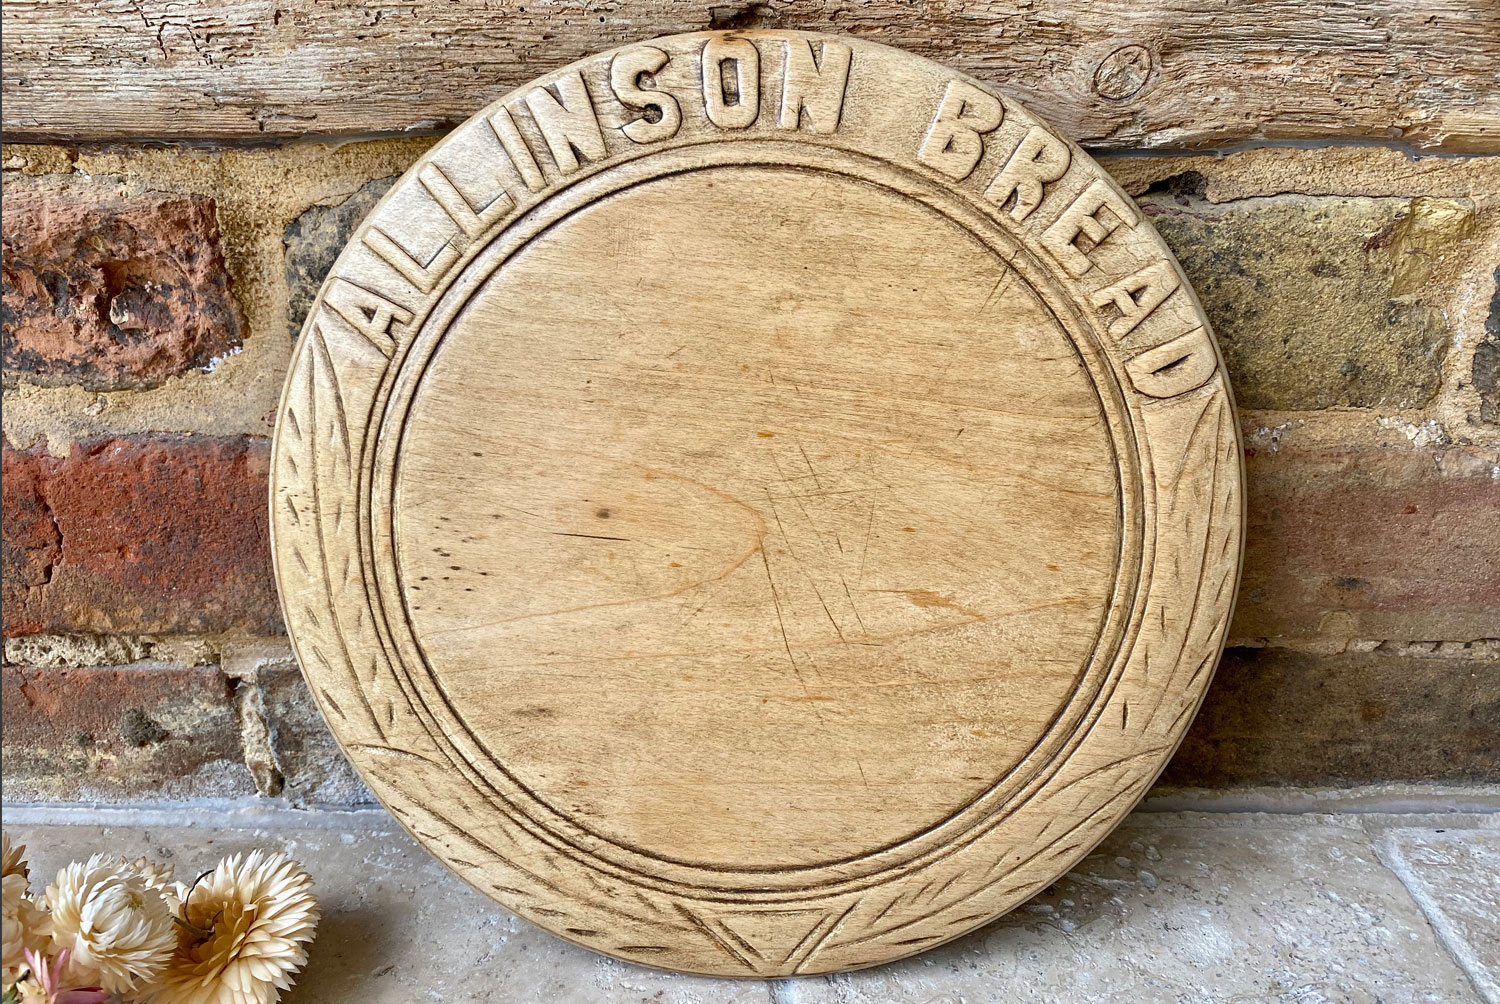 antique 1920s advertising carved english sycamore bread board allinson bread